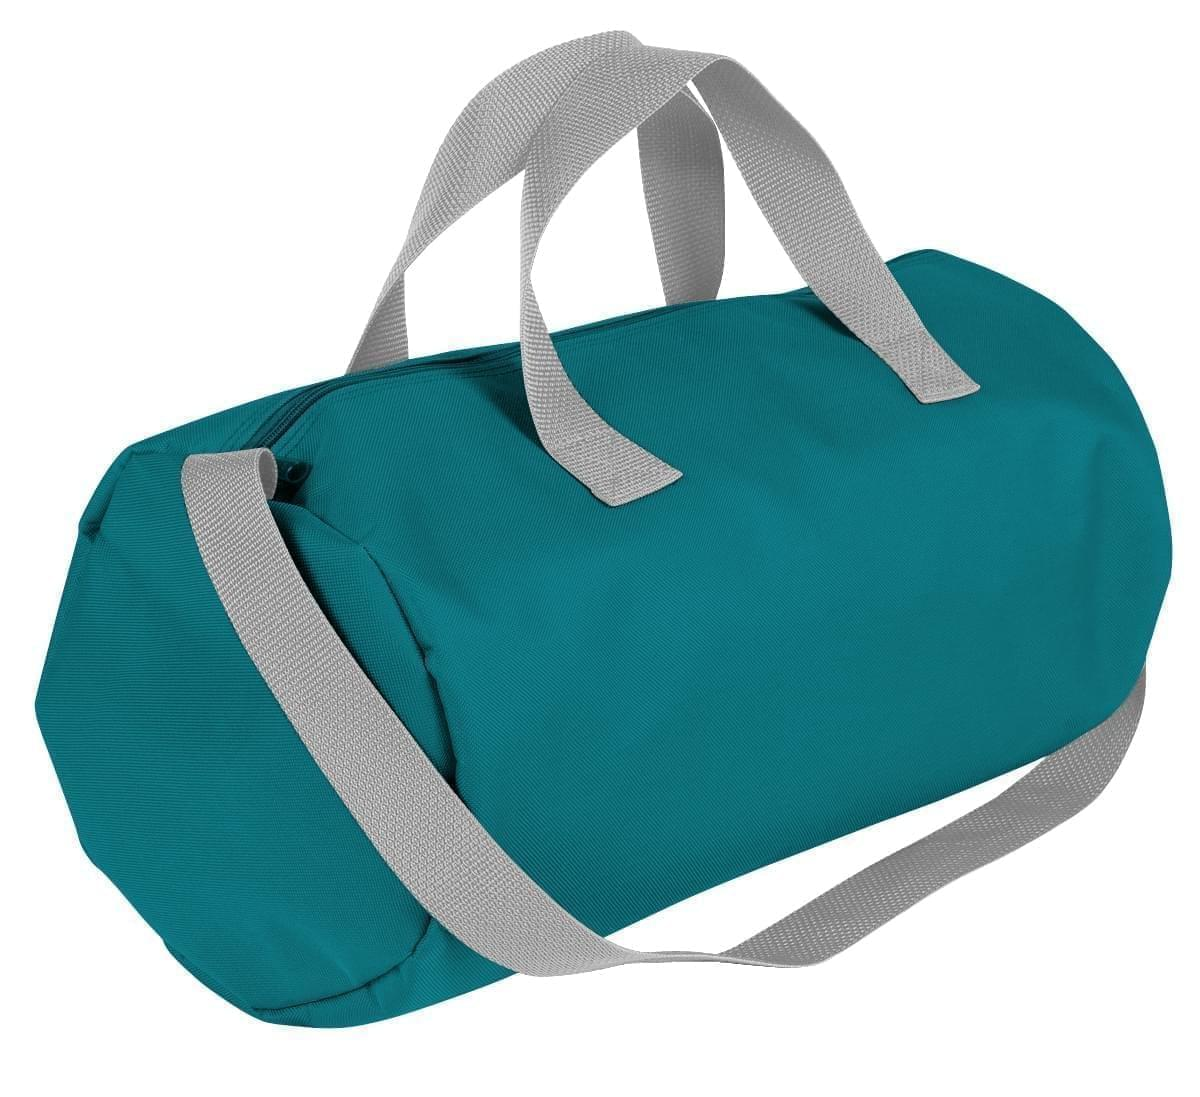 USA Made Nylon Poly Gym Roll Bags, Turquoise-Grey, ROCX31AA9U